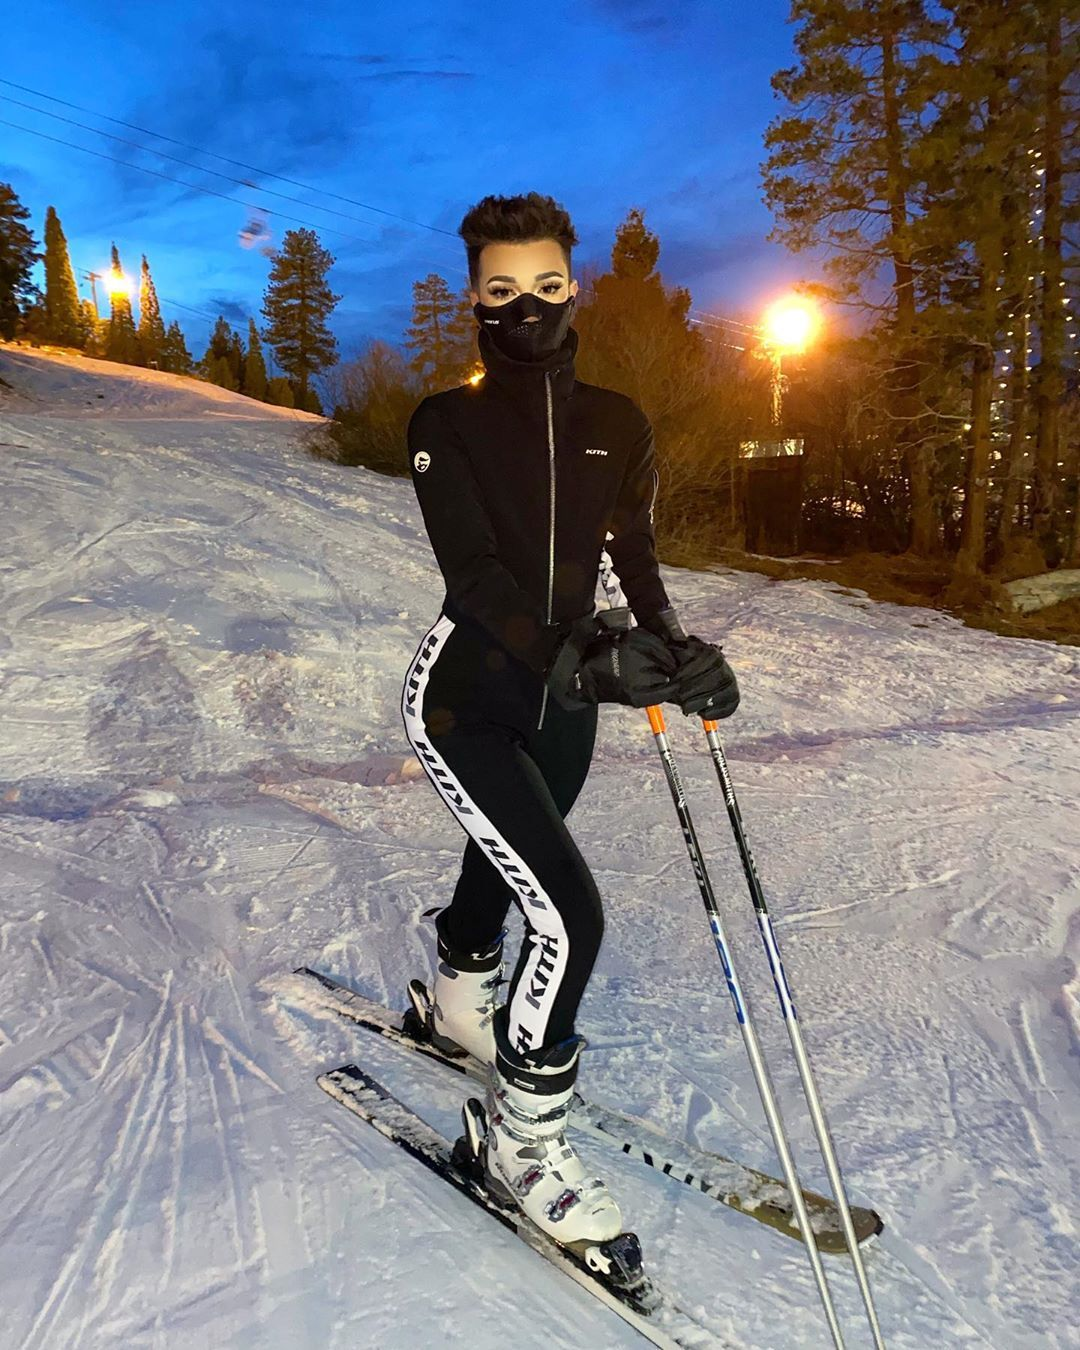 465 3k Likes 2 556 Comments James Charles Jamescharles On Instagram Went Skiing Last Night For The First Time In Ov James Charles Charles James Charles